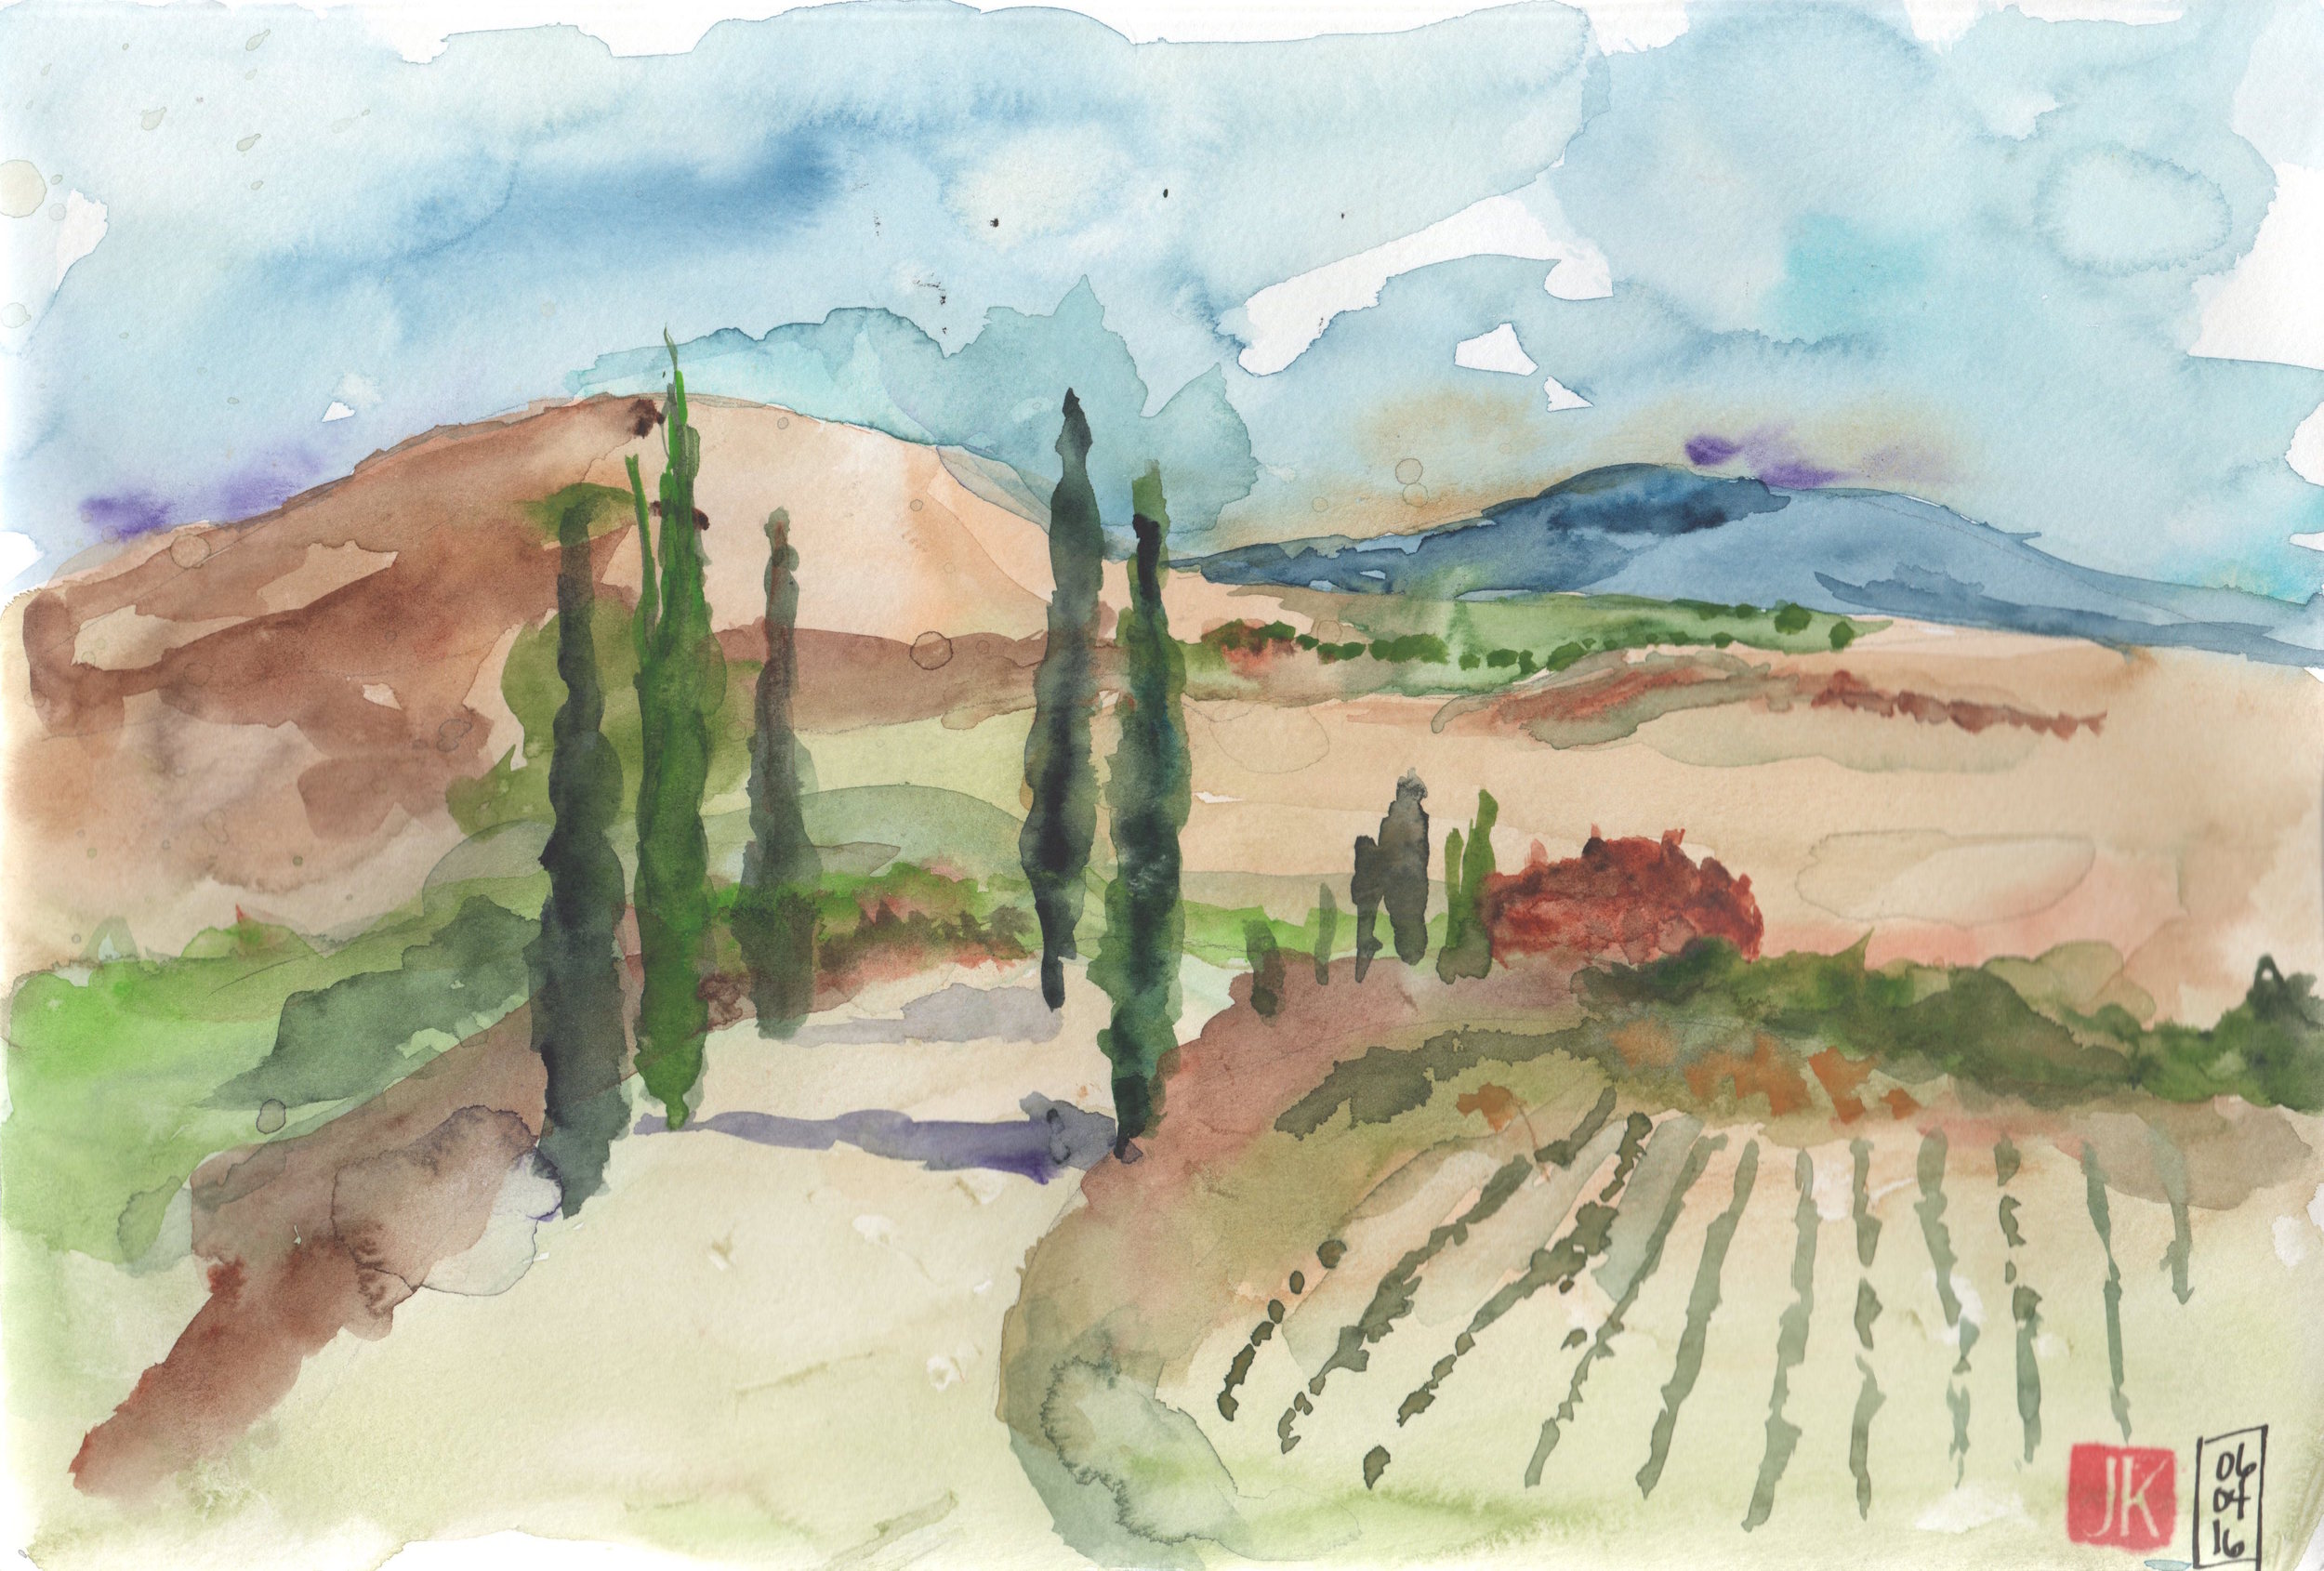 I followed Marc's demonstration using watercolors only